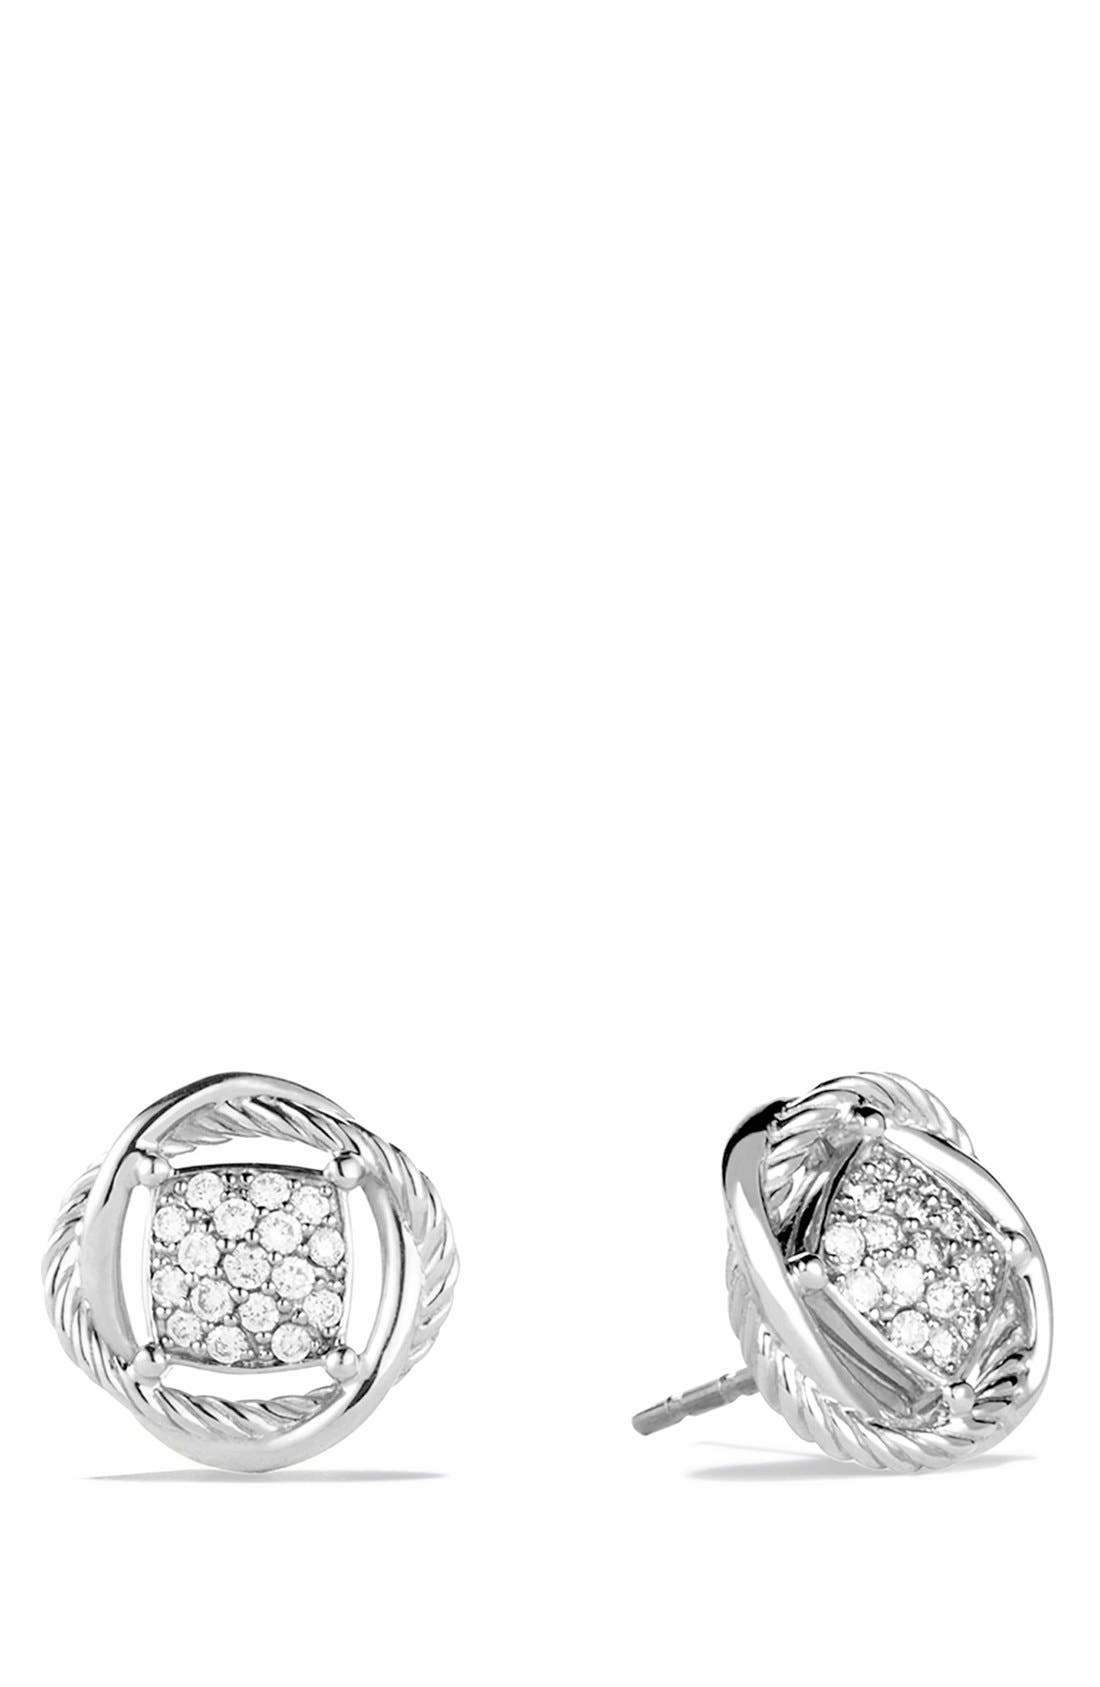 Alternate Image 1 Selected - David Yurman 'Infinity' Pavé Diamond Stud Earrings